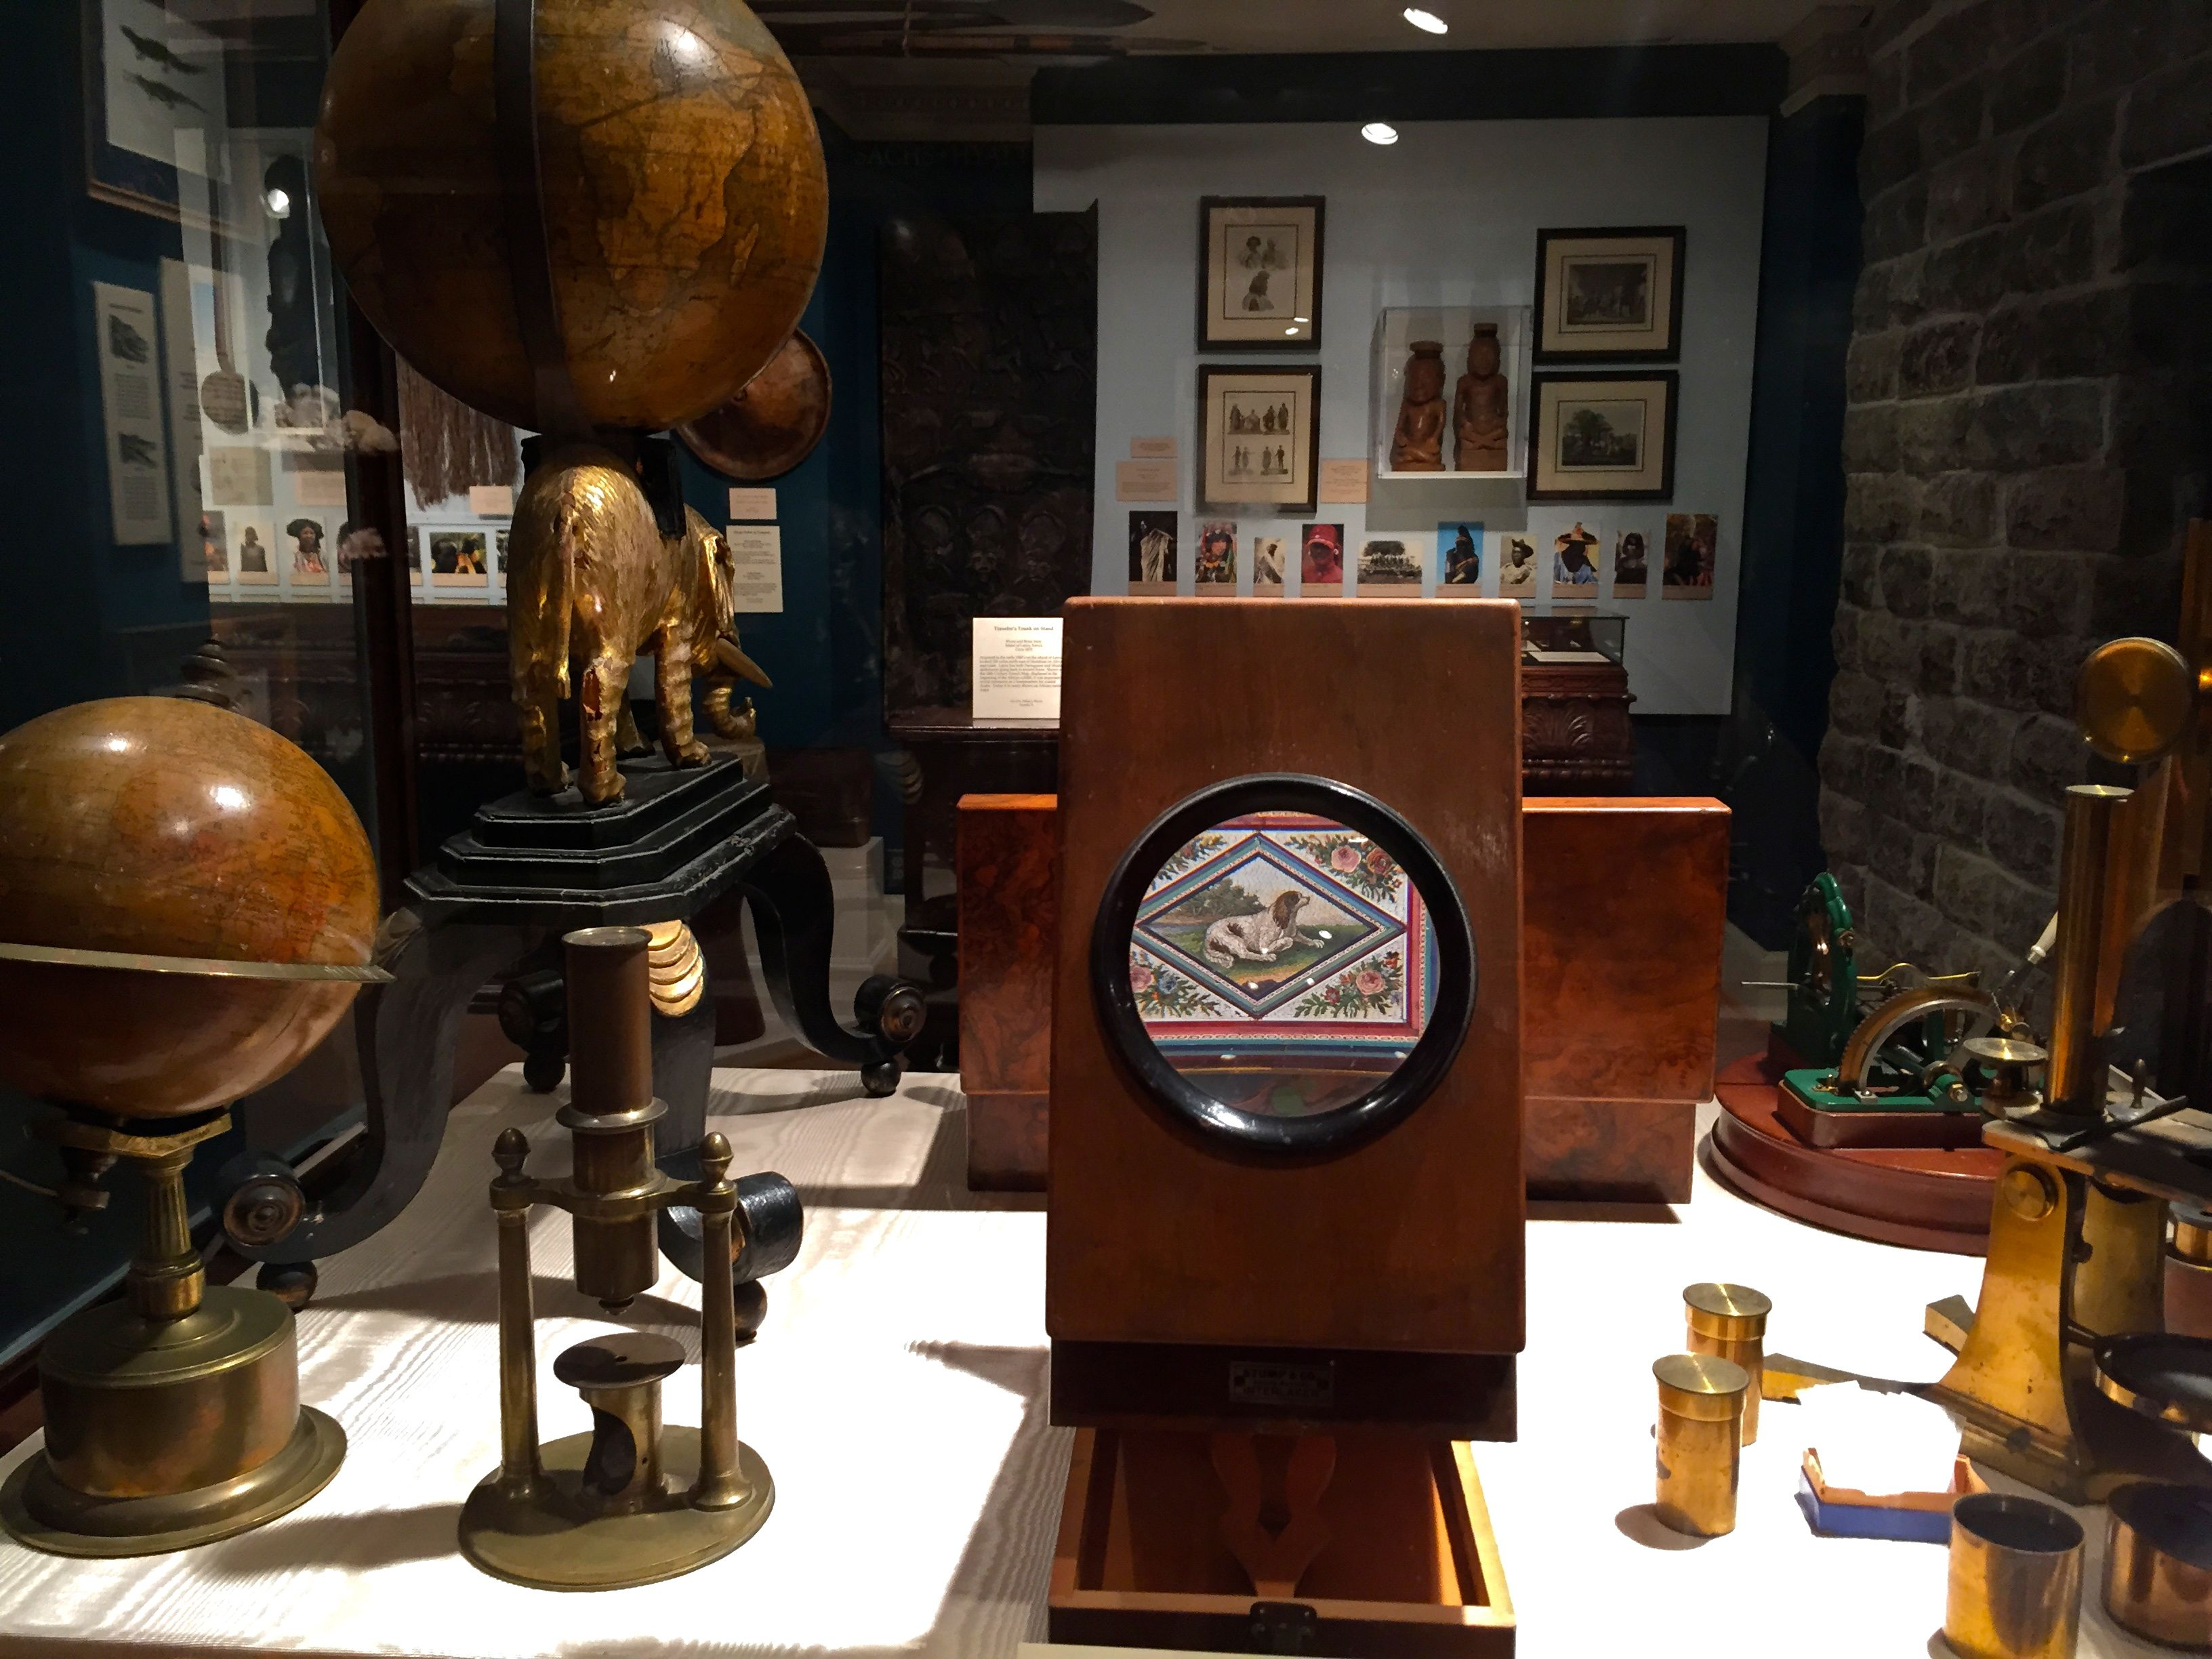 Science and Industry Room at the Lightner Museum